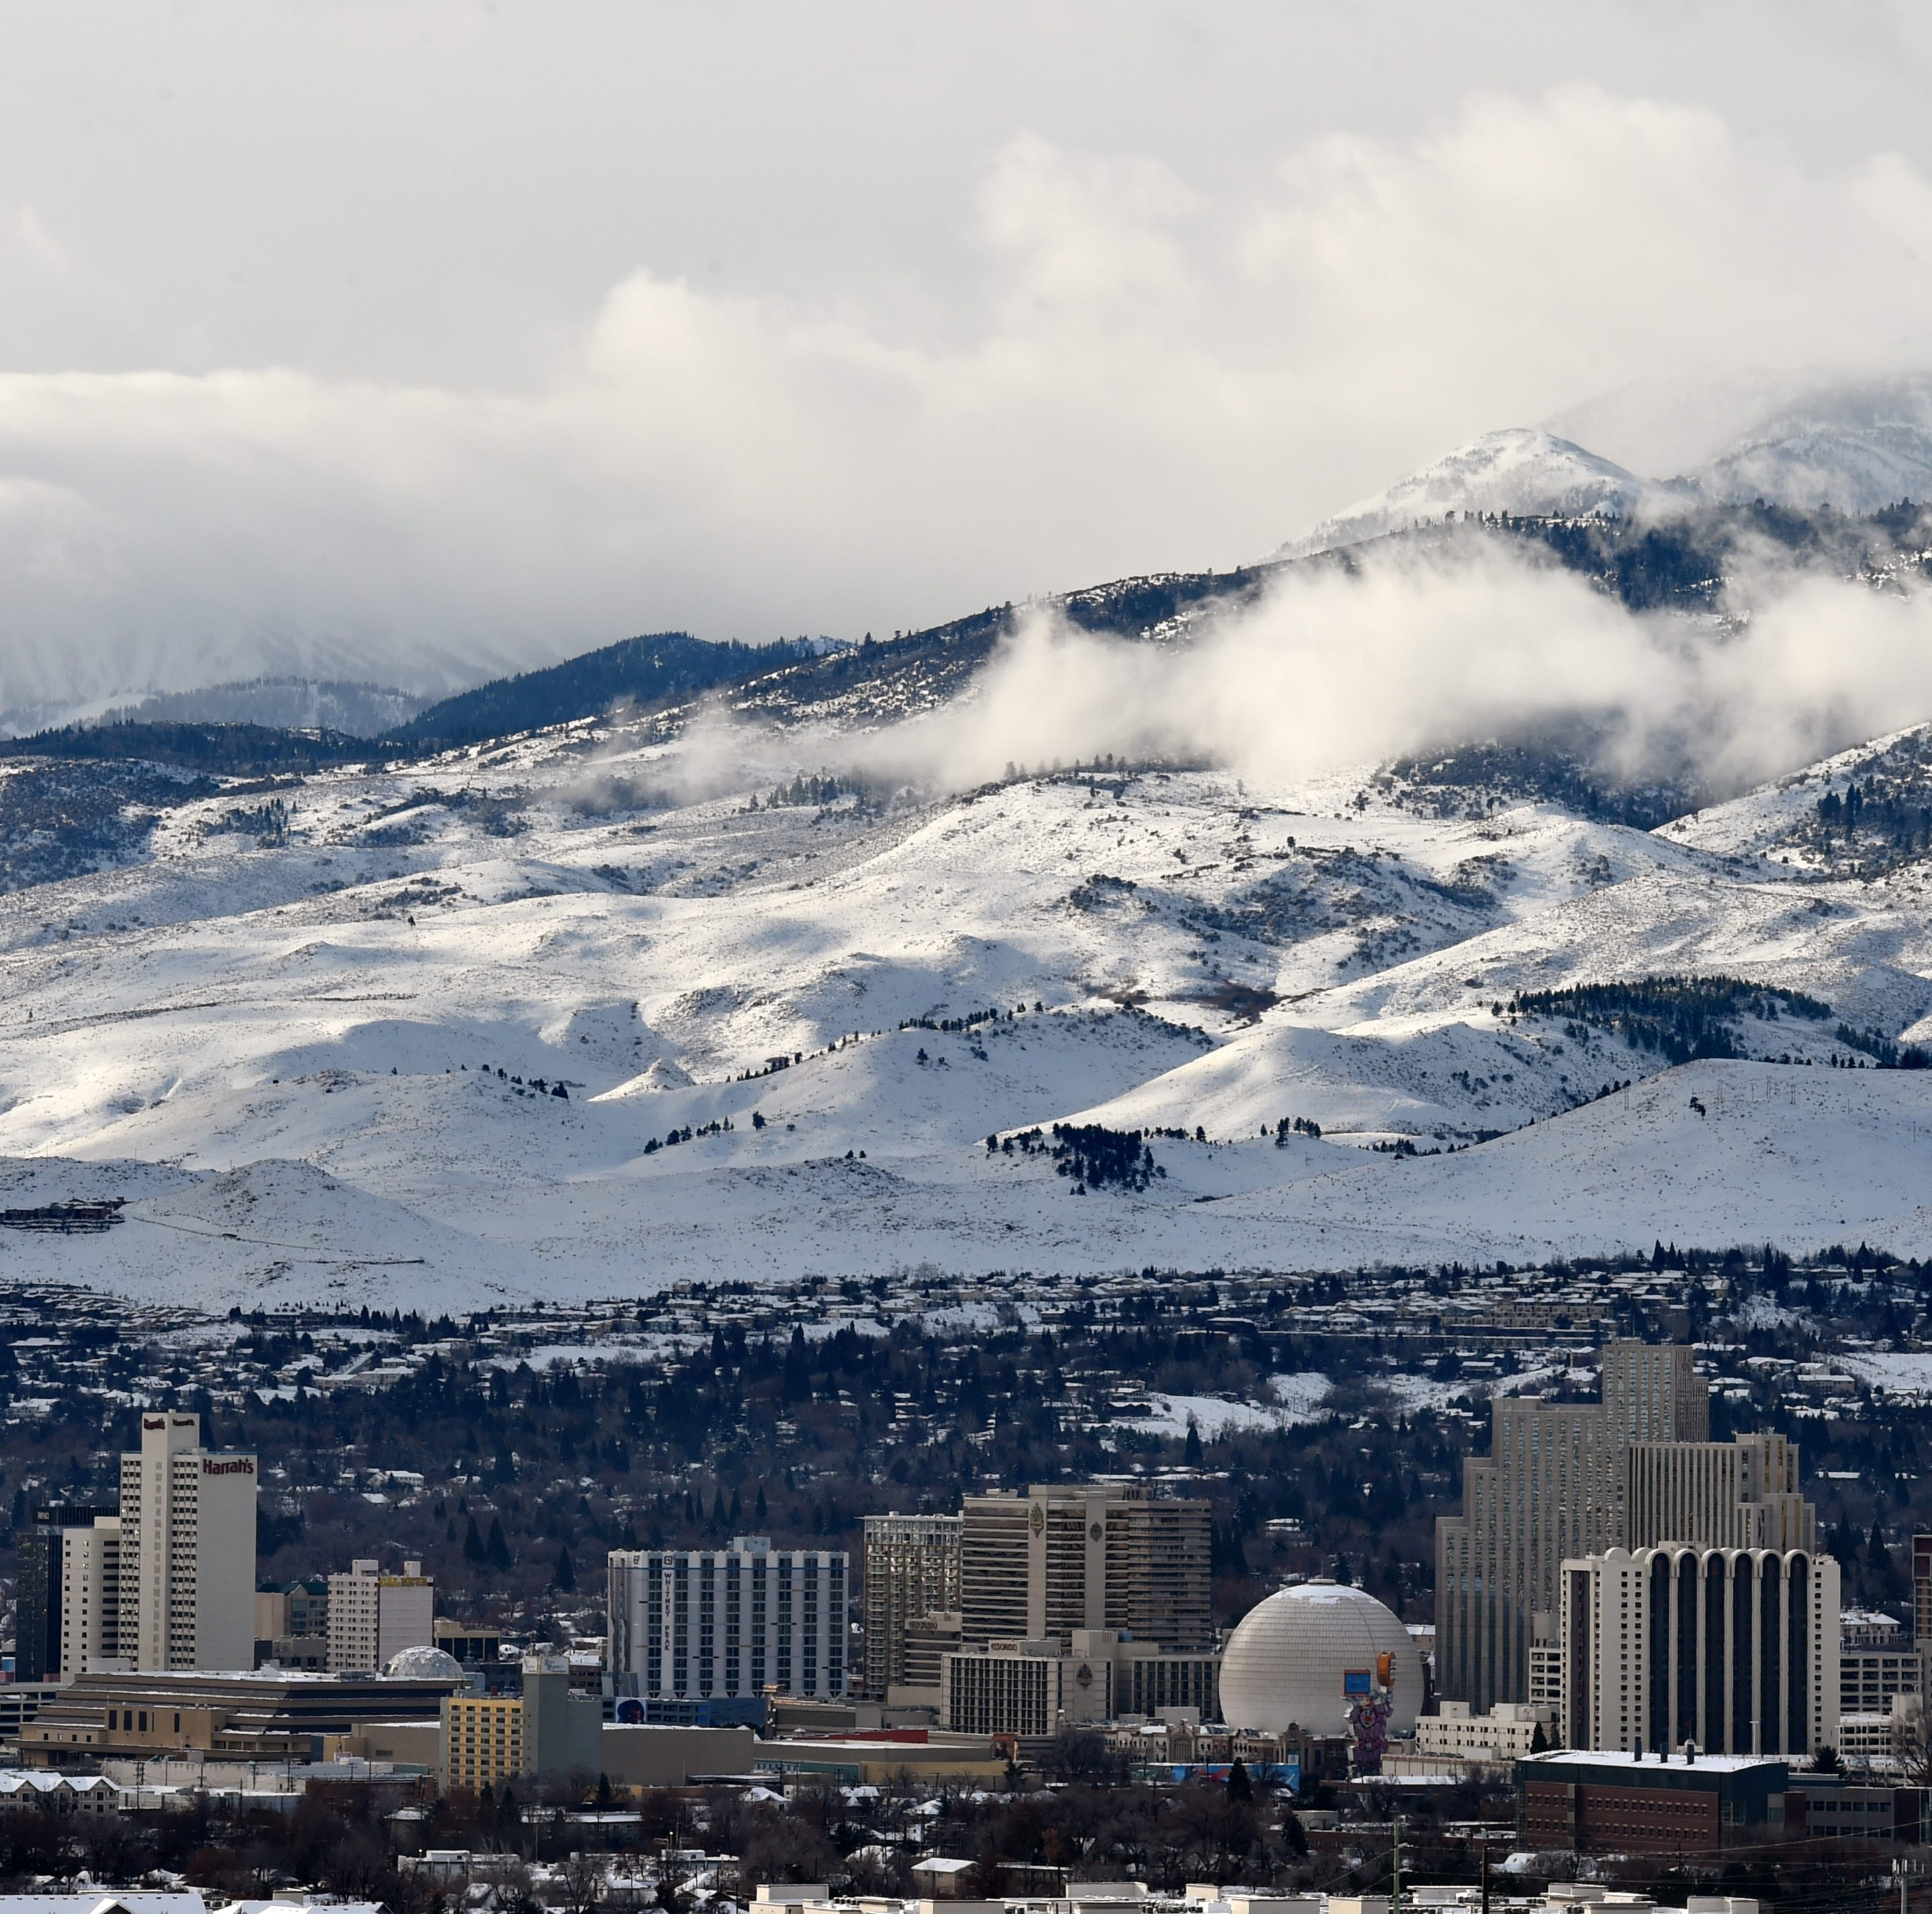 Winter weather: No chain controls currently on I-80, but snow is on its way